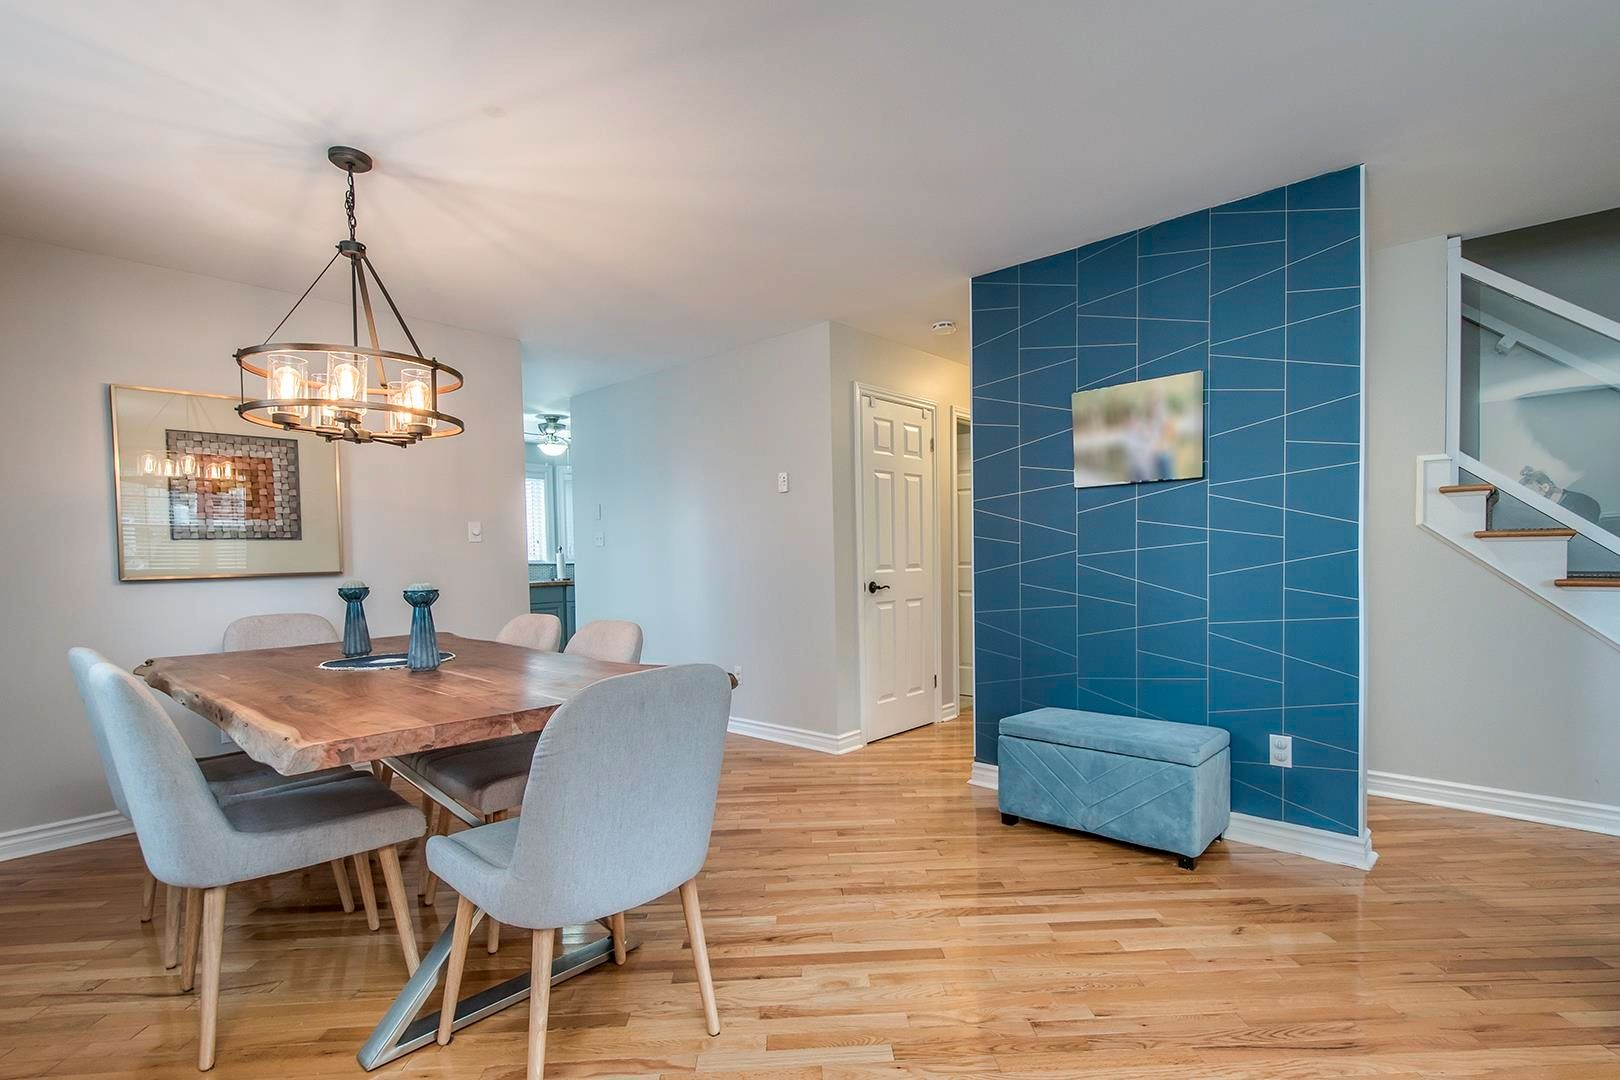 Photo 6: Photos: 64 Roy Crescent in Bedford: 20-Bedford Residential for sale (Halifax-Dartmouth)  : MLS®# 202110846